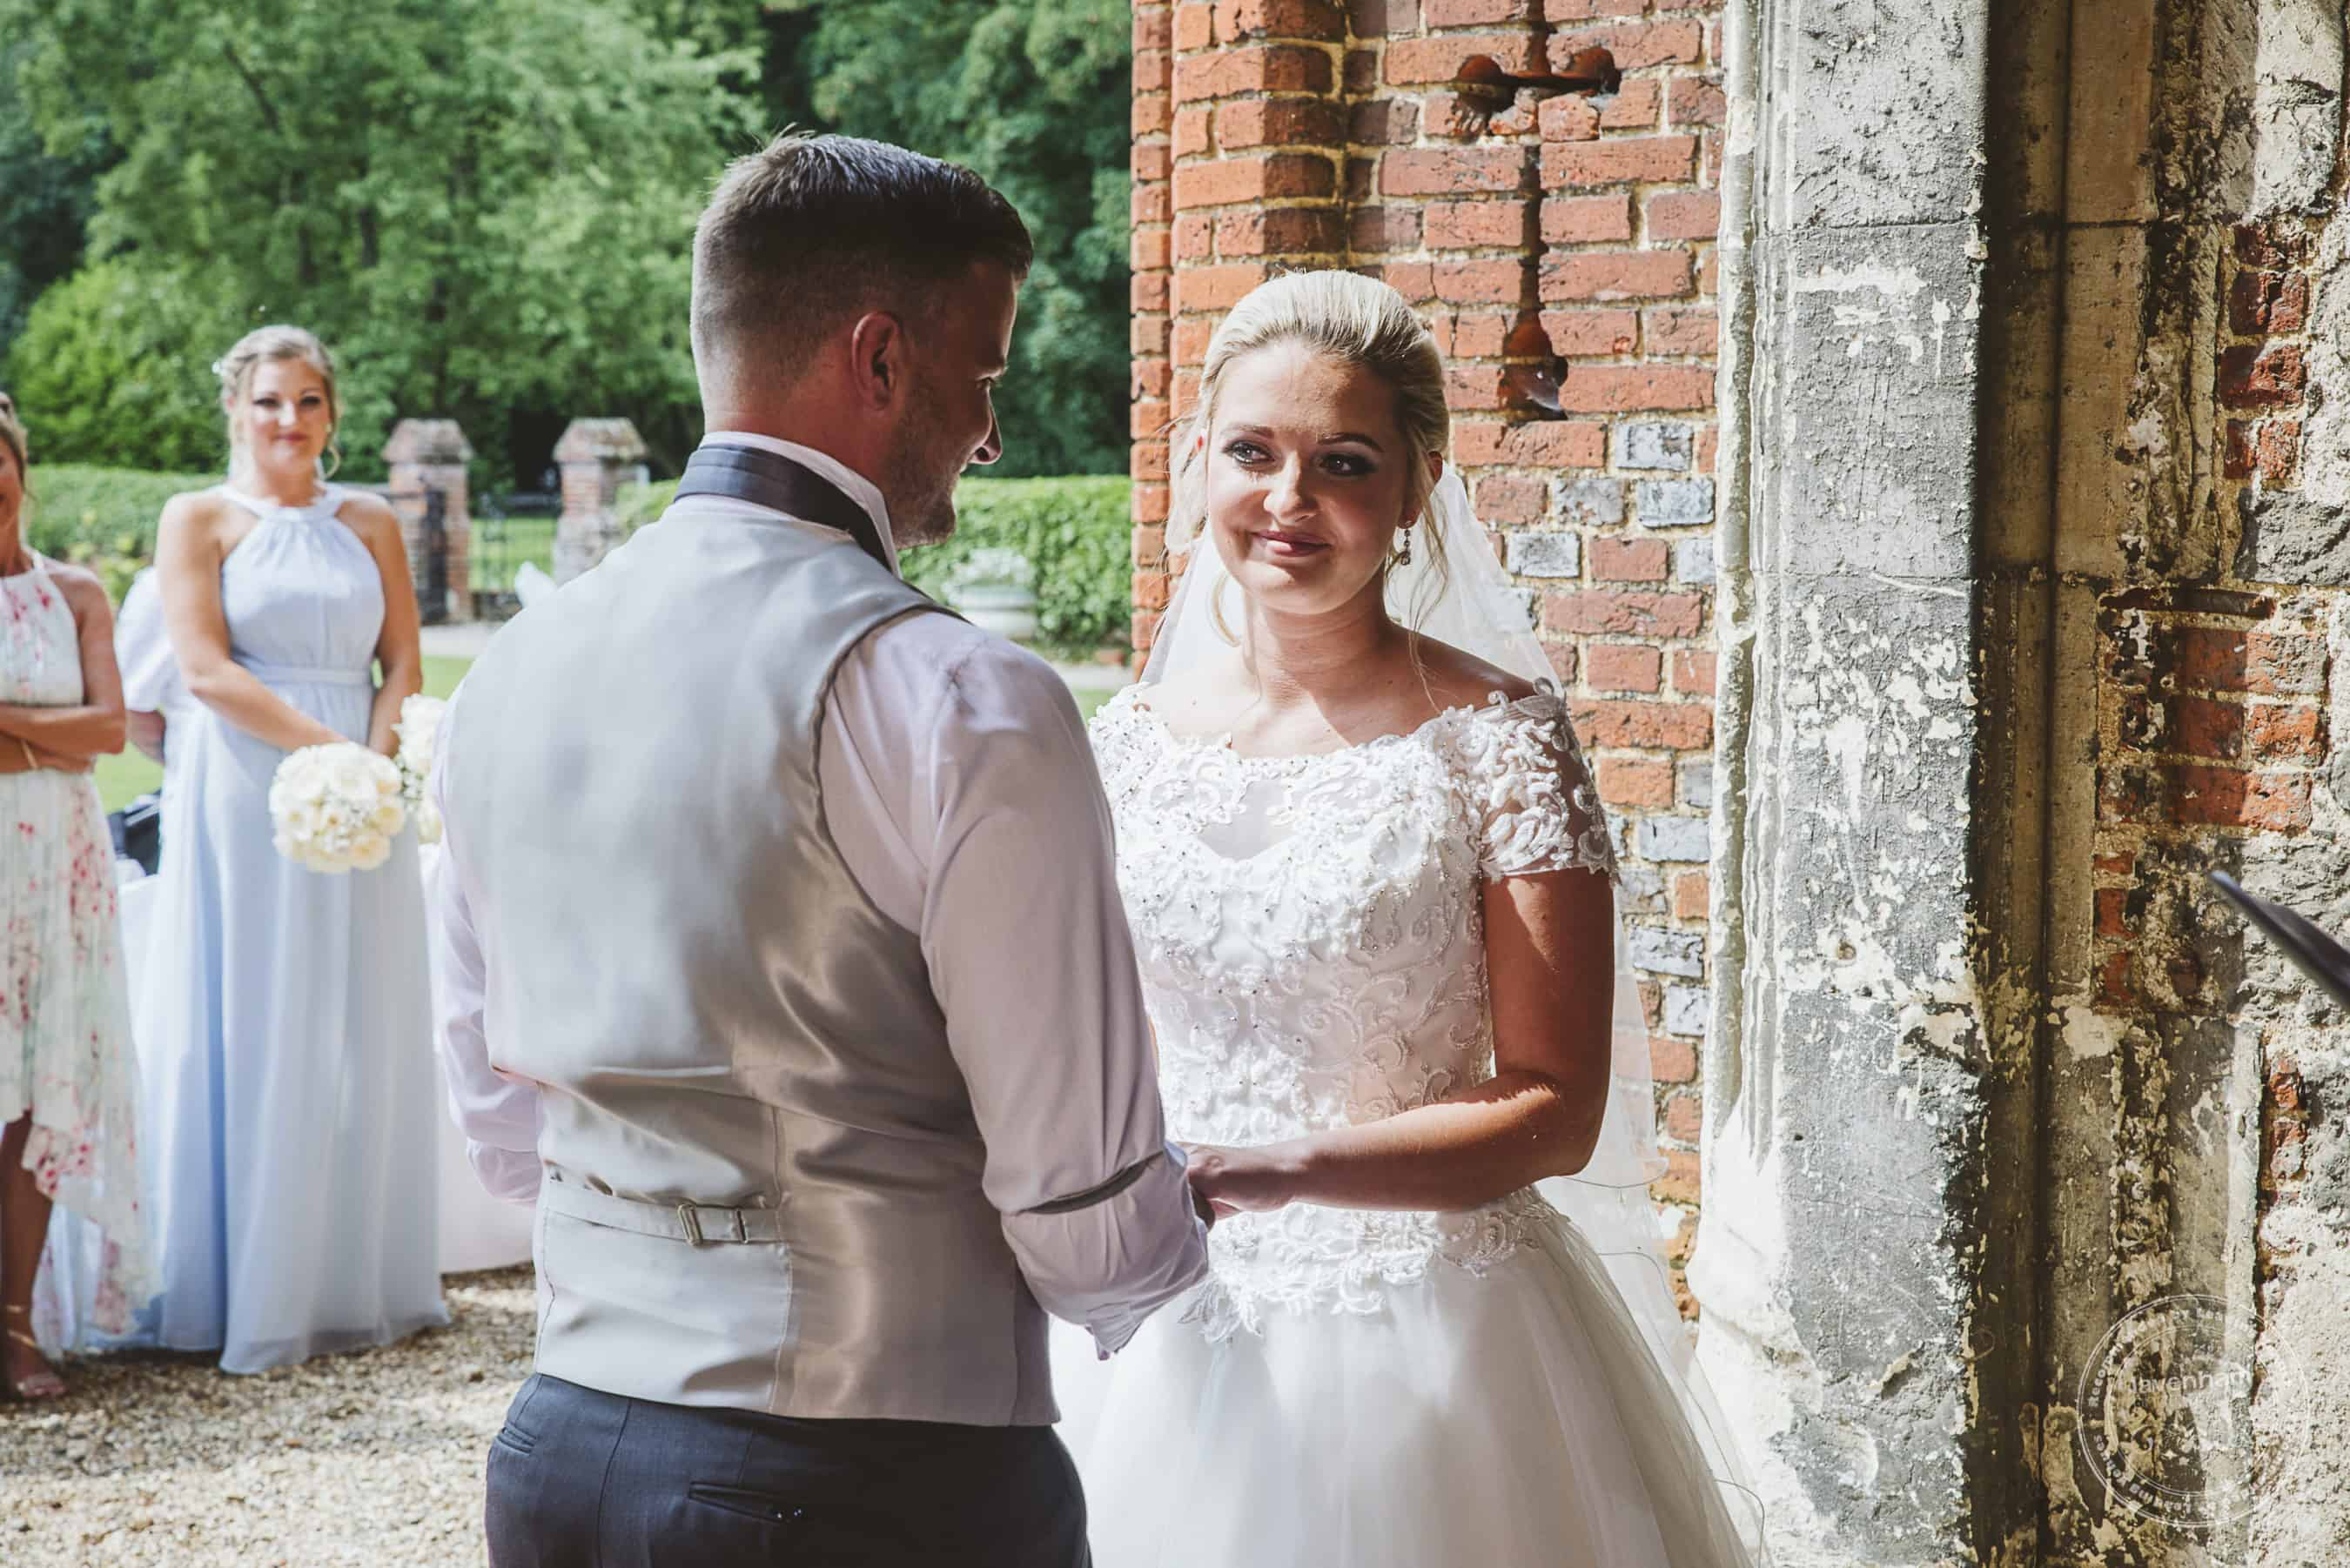 030618 Leez Priory Wedding Photography Lavenham Photographic 036